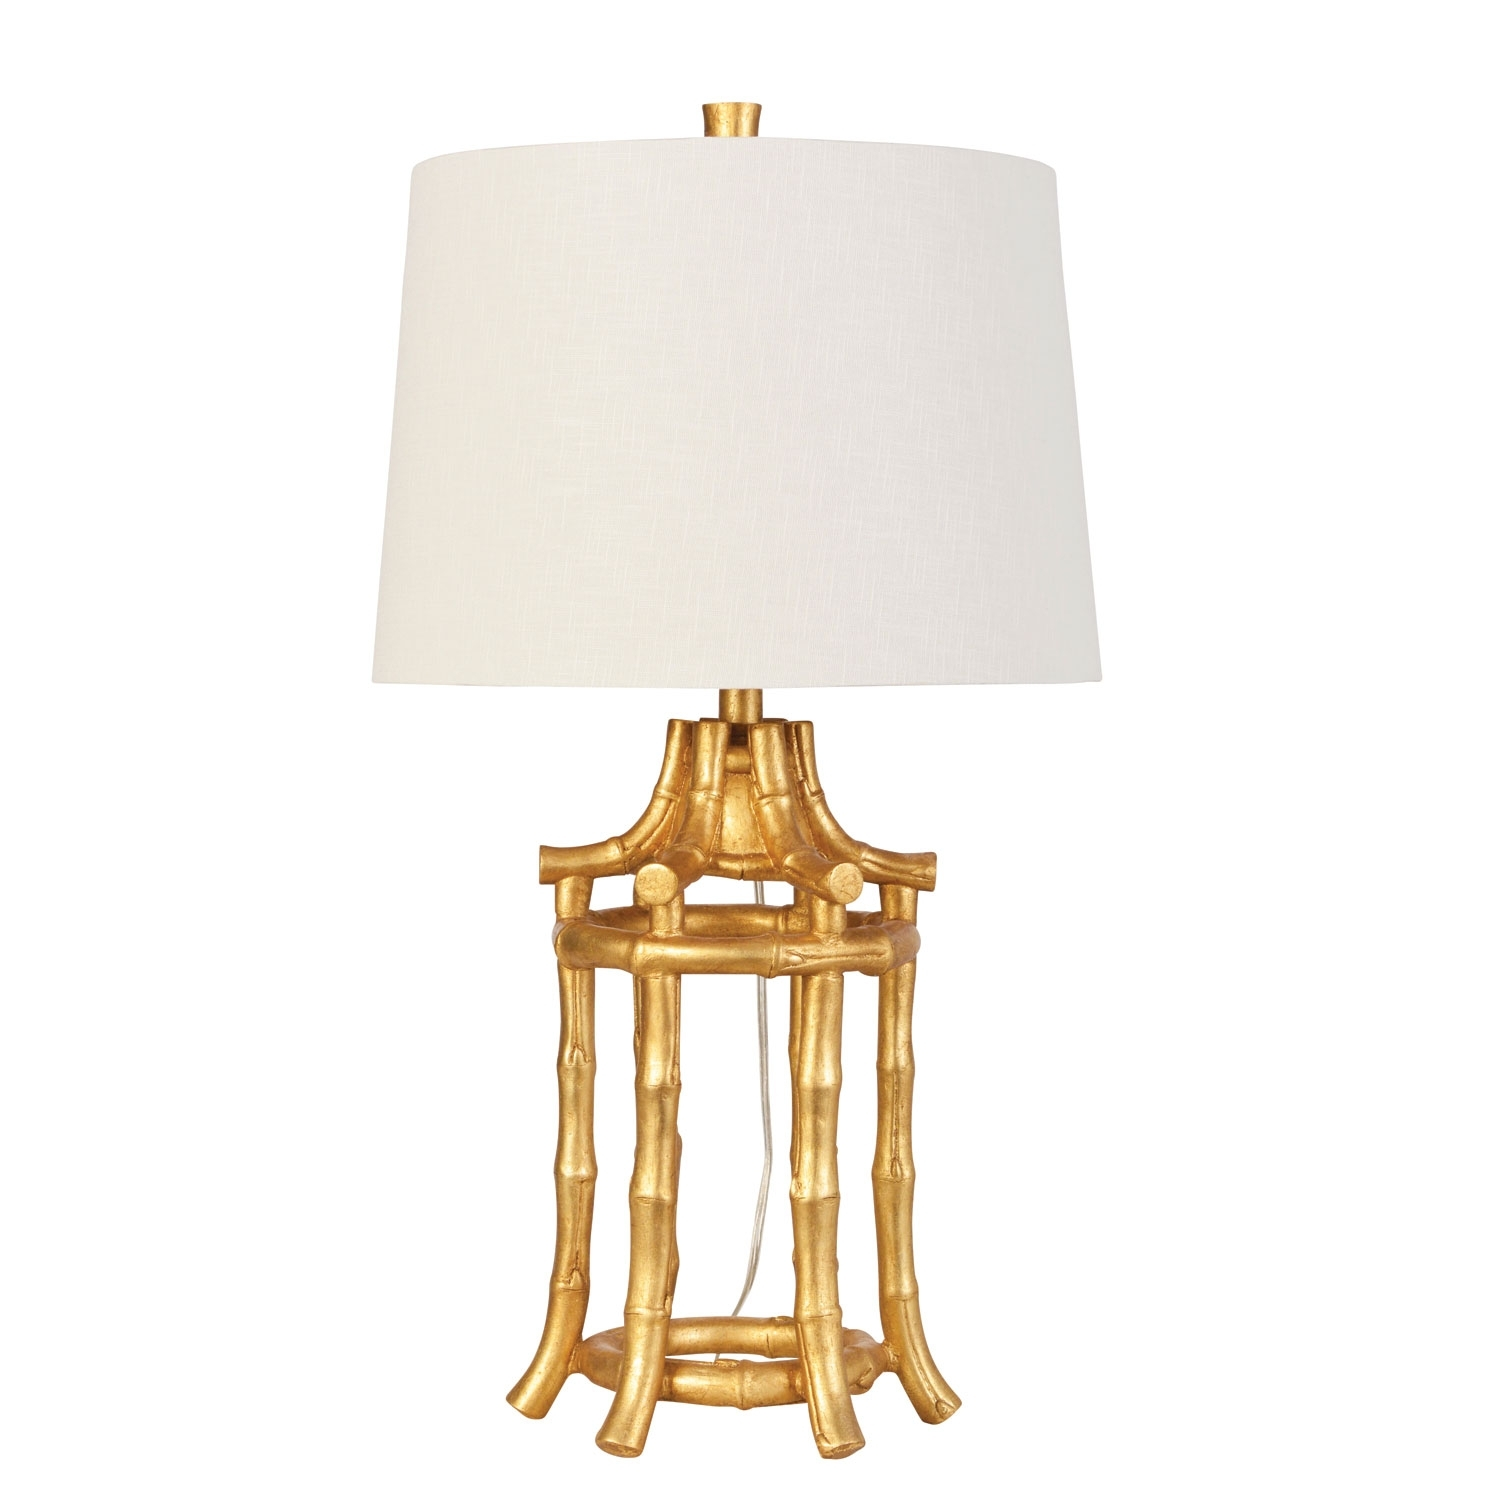 Lamp : Gold Table Lamp Base Lamps Living Room Shades For With Metal With Gold Living Room Table Lamps (#14 of 15)